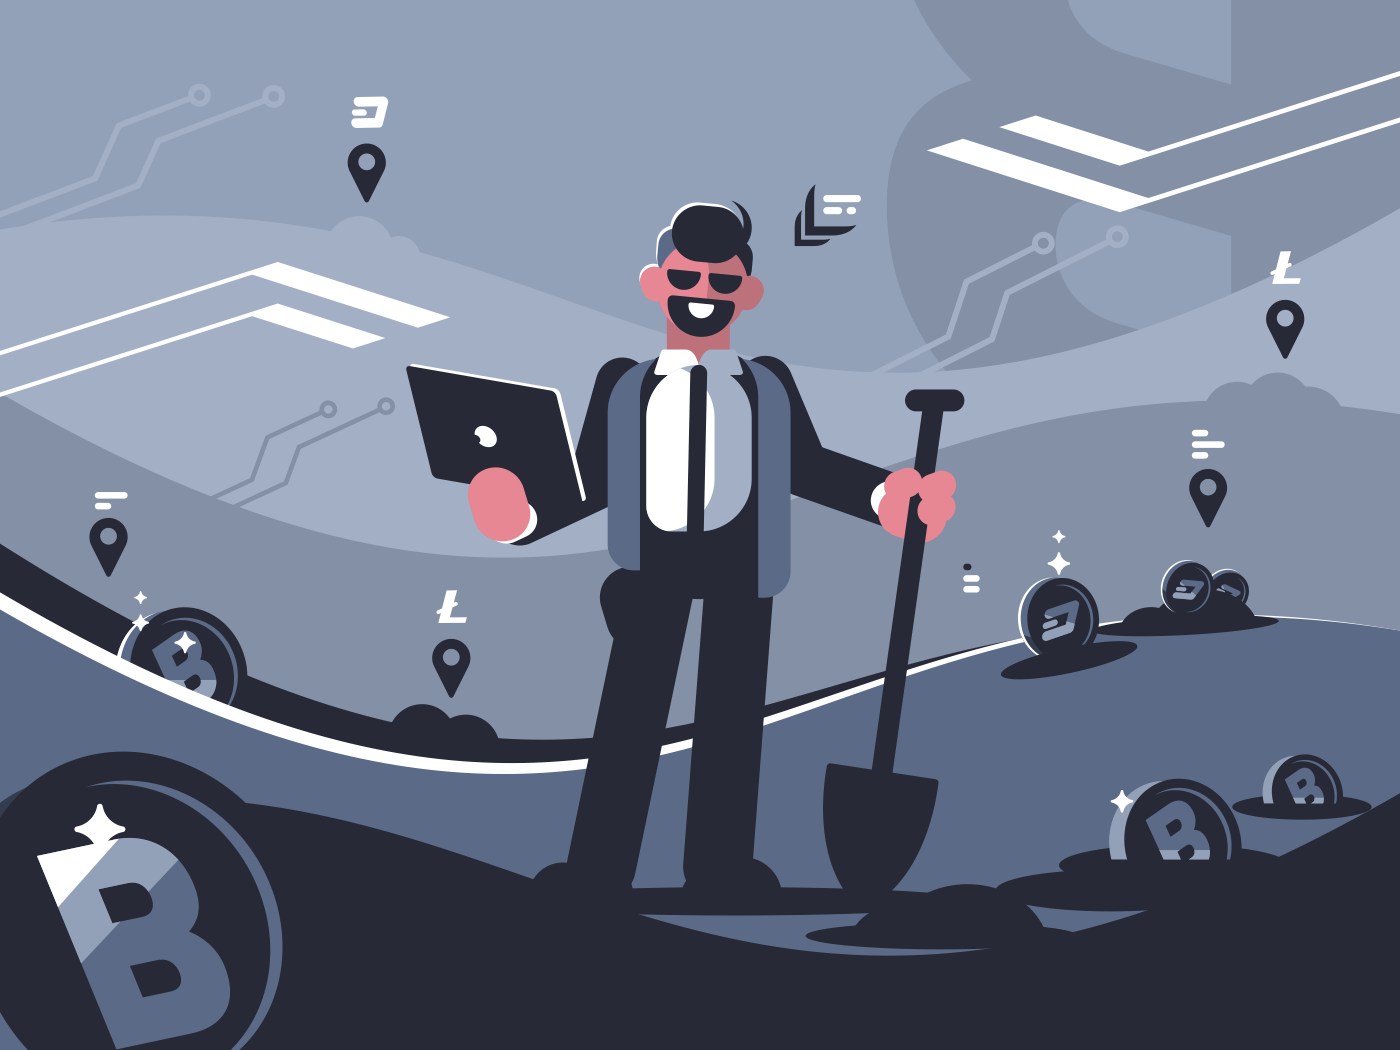 Digital miner of crypto currency. Successful modern businessman. Vector illustration